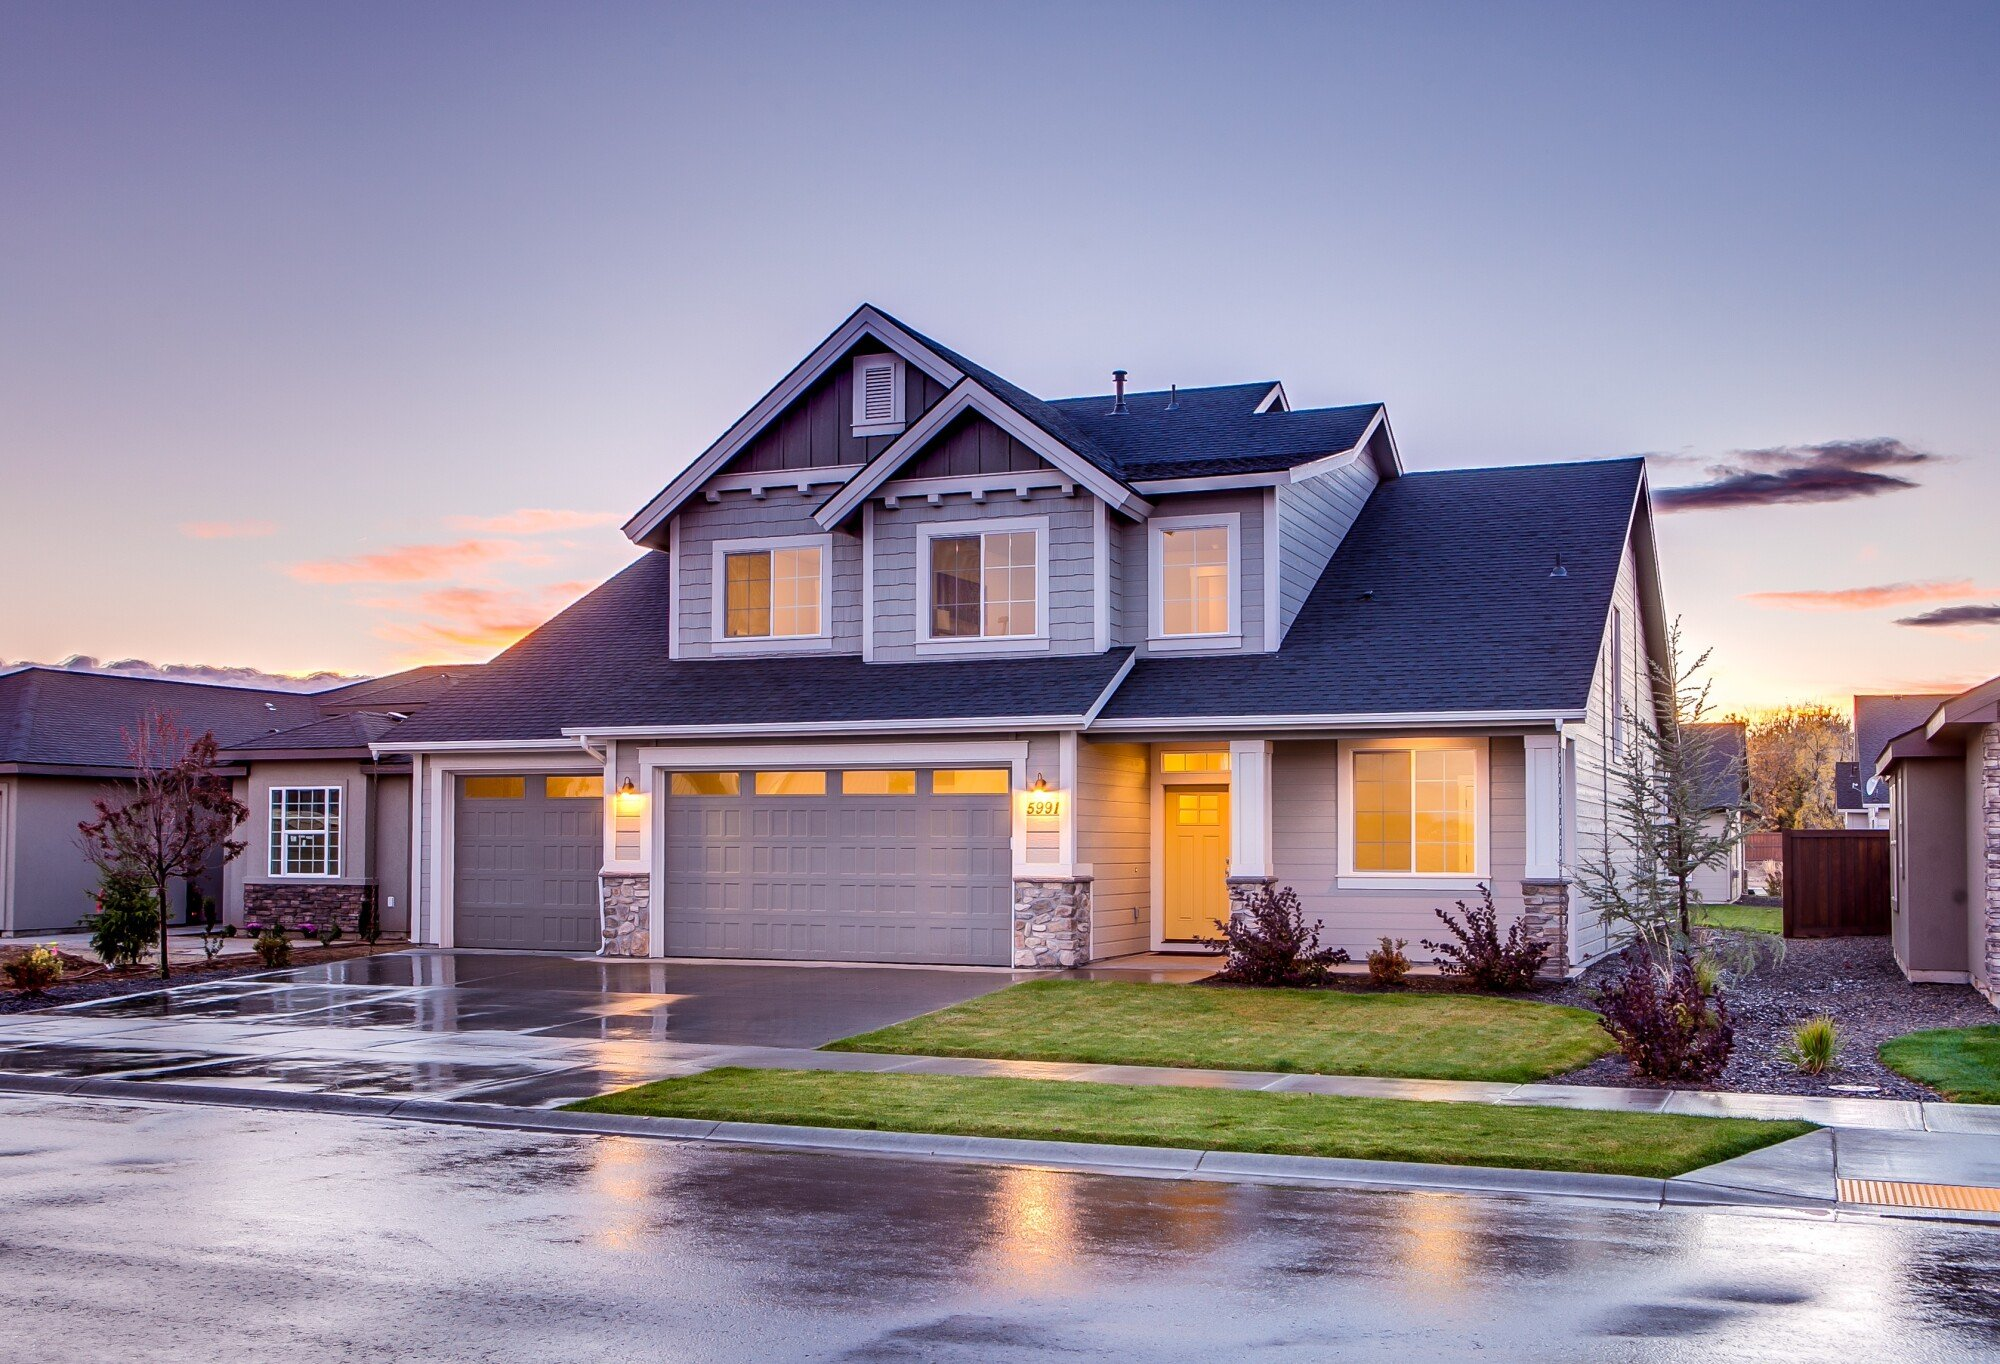 How to Sell My House With No Closing Costs